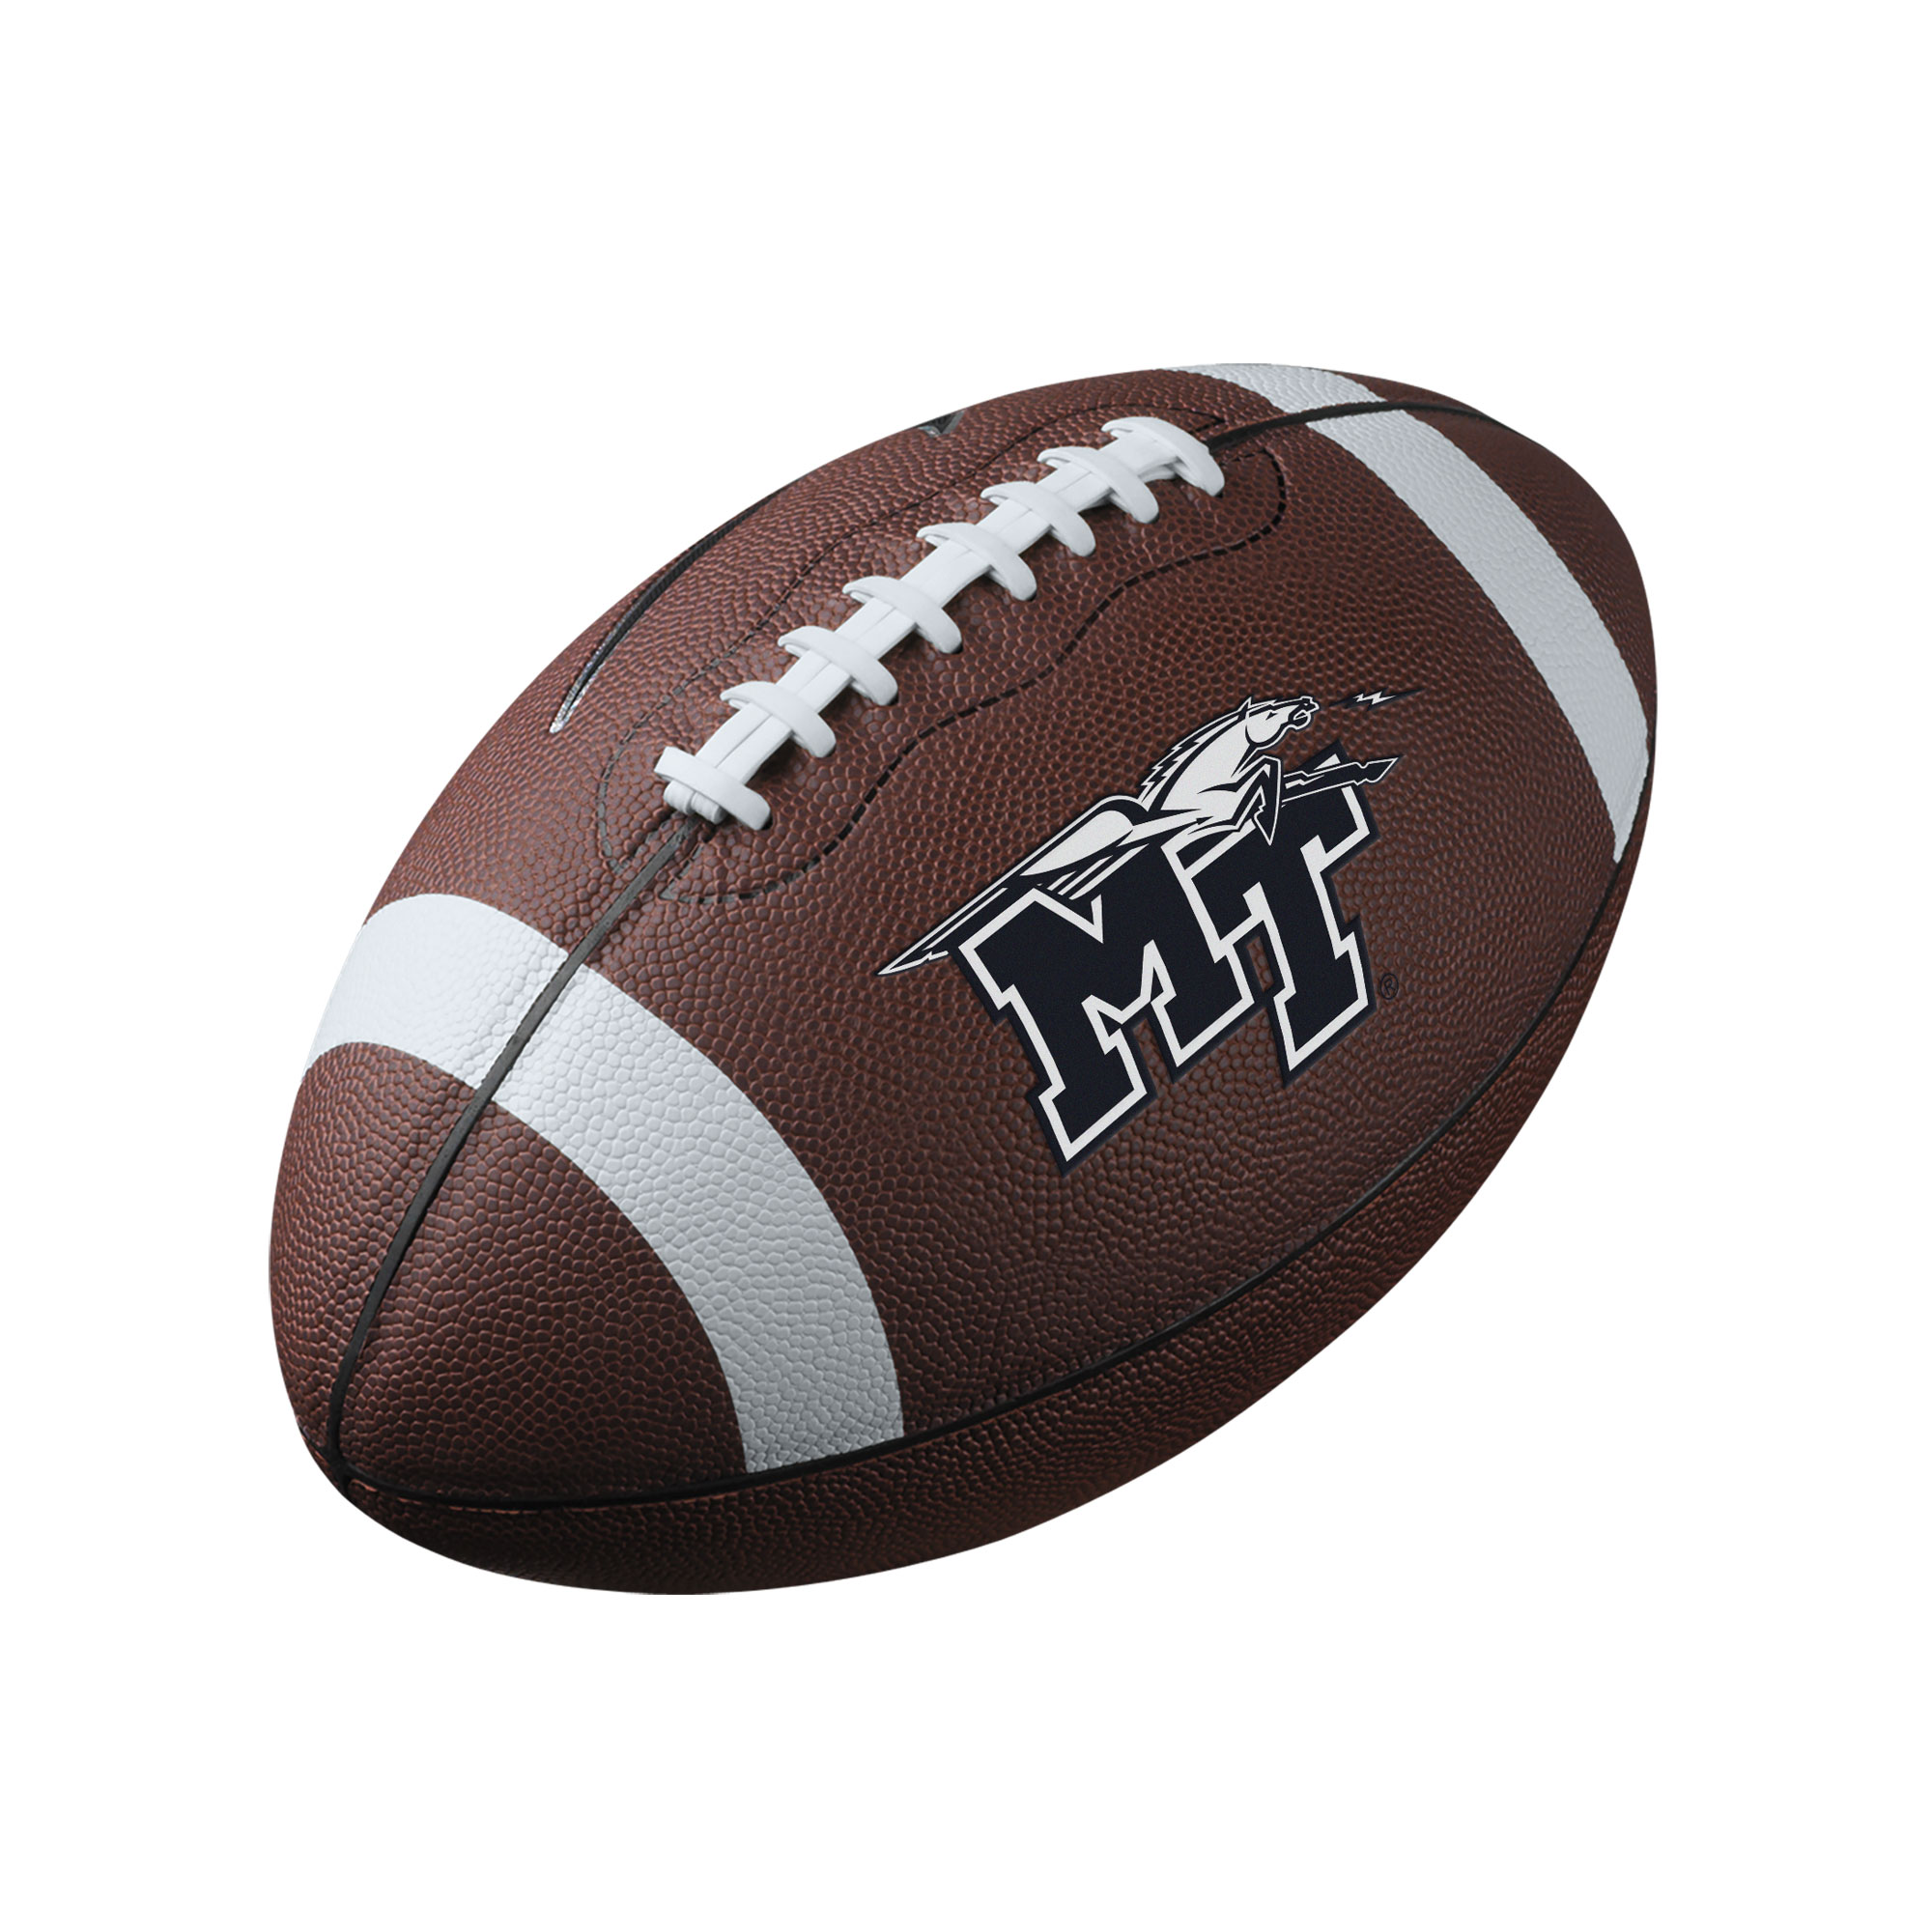 MT Logo w/ Lightning Nike® Replica Football